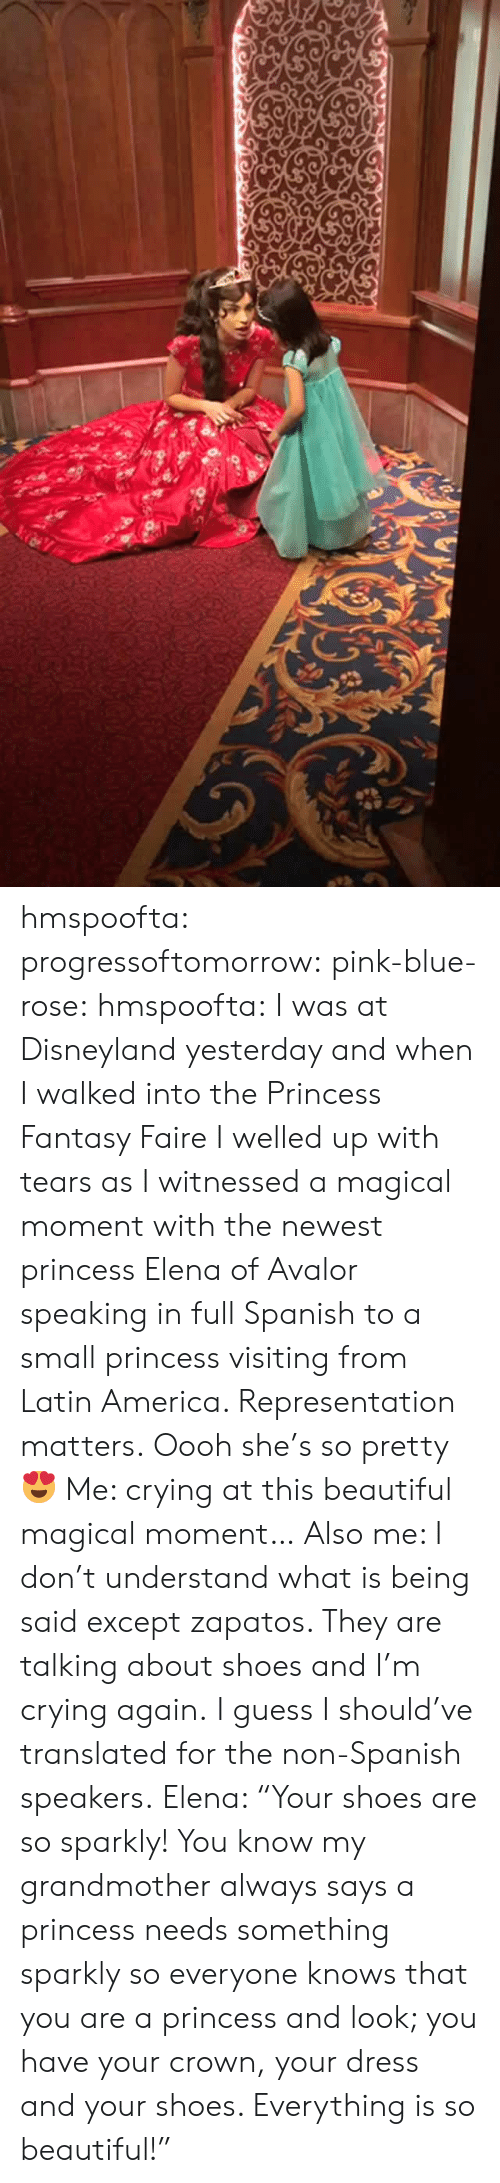 """Exceptable: hmspoofta: progressoftomorrow:  pink-blue-rose:  hmspoofta:   I was at Disneyland yesterday and when I walked into the Princess Fantasy Faire I welled up with tears as I  witnessed a magical moment with the newest princess Elena of Avalor speaking in full Spanish to a small princess visiting from Latin America.   Representation matters.   Oooh she's so pretty 😍  Me: crying at this beautiful magical moment… Also me: I don't understand what is being said except zapatos. They are talking about shoes and I'm crying again.  I guess I should've translated for the non-Spanish speakers.  Elena: """"Your shoes are so sparkly! You know my grandmother always says a princess needs something sparkly so everyone knows that you are a princess and look; you have your crown, your dress and your shoes. Everything is so beautiful!"""""""